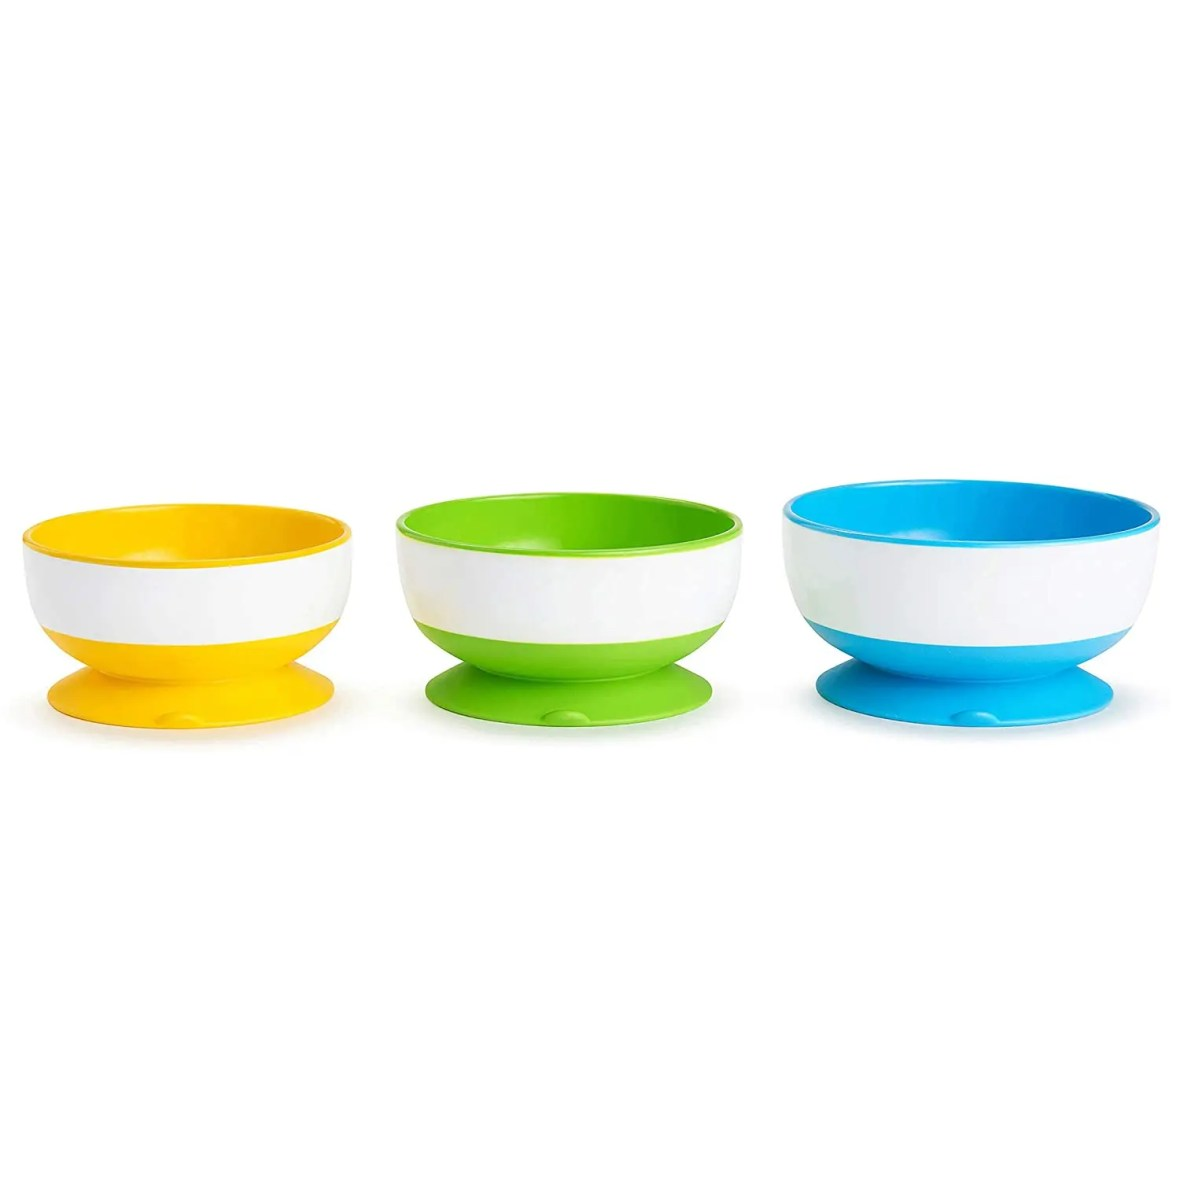 Munchkin Stay Put Suction Bowl, 3 Pack YGB